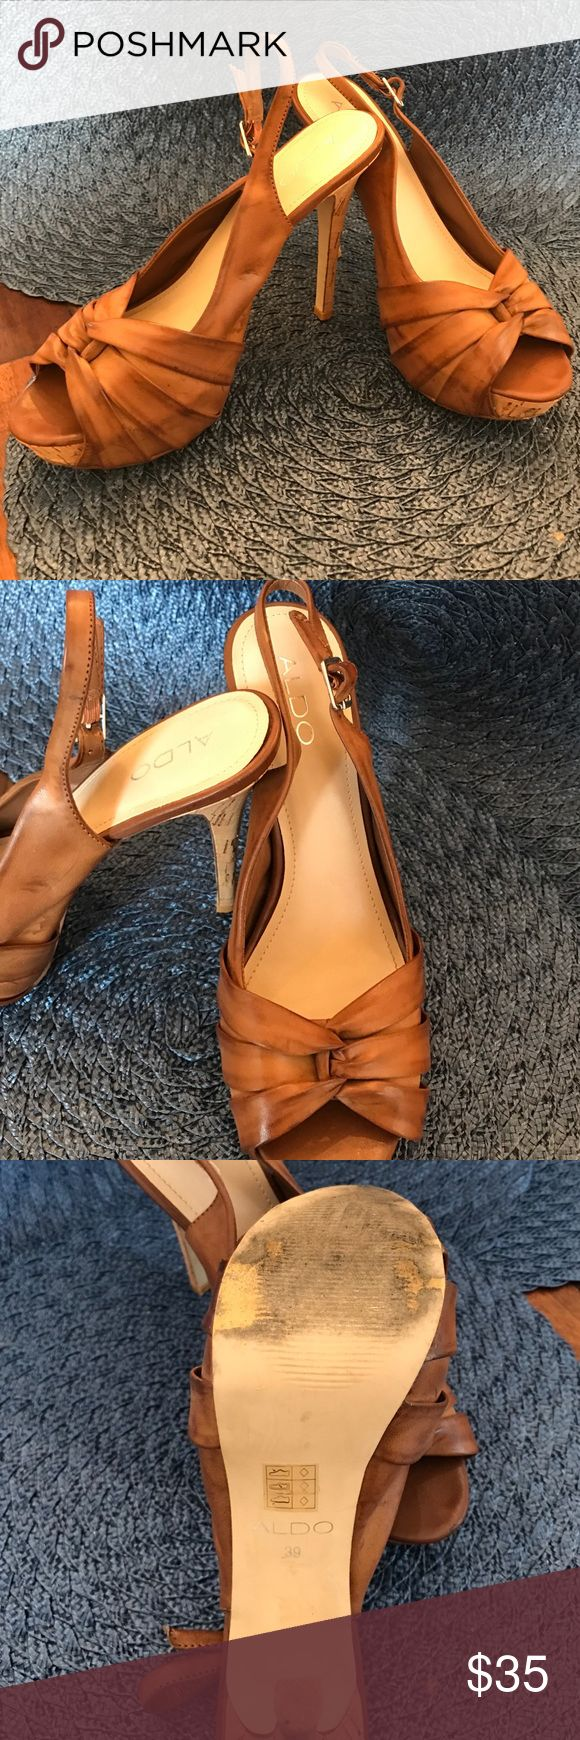 Cognac cork 5 inch heels by Aldo size 39/8 These shoes have only been worn 2 to 3 times and they look so great with spring/summer dressses or with jeans!! These are Aldo size 39 which is a women's 9 size. I typically wear a 7.5 or 8 so they could work for up to an 8.5, but a true 9 would be too small. Aldo Shoes Heels